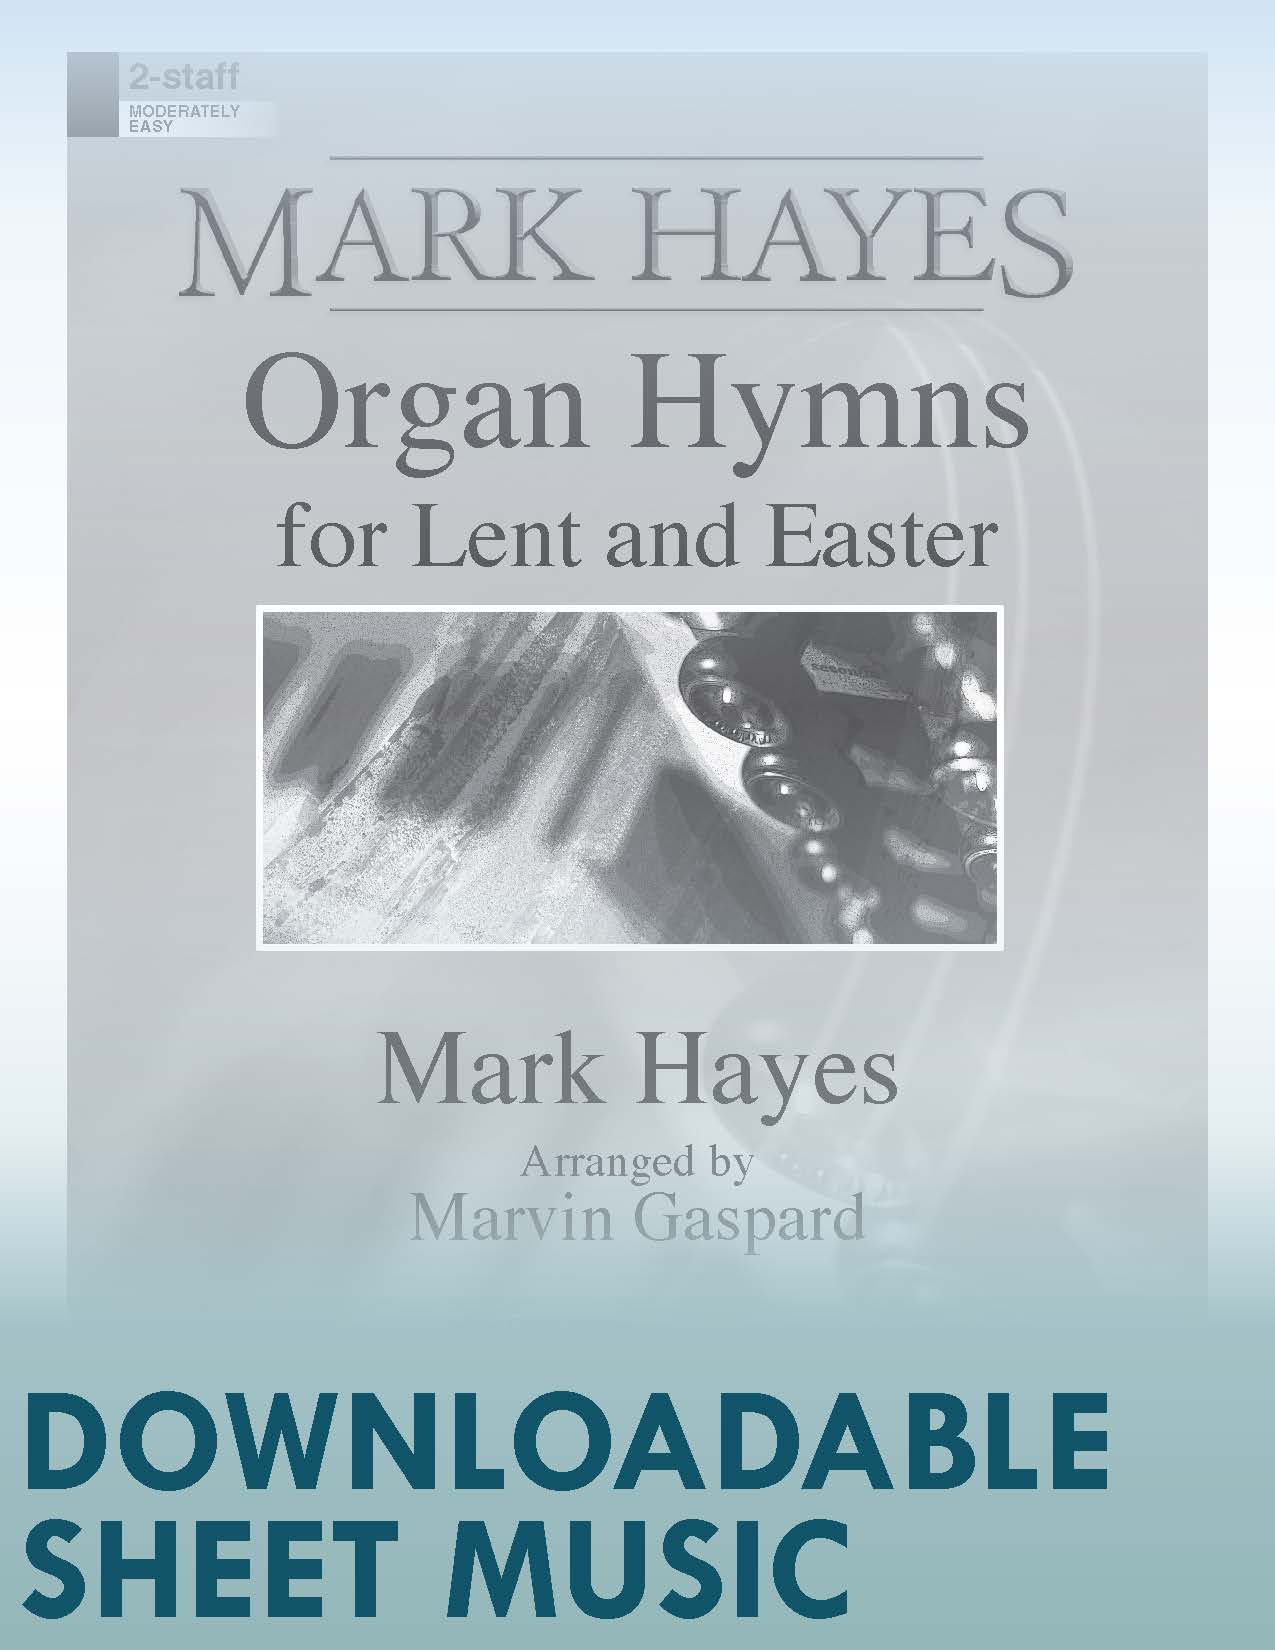 Mark Hayes: Organ Hymns for Lent and Easter (Digital Delivery)